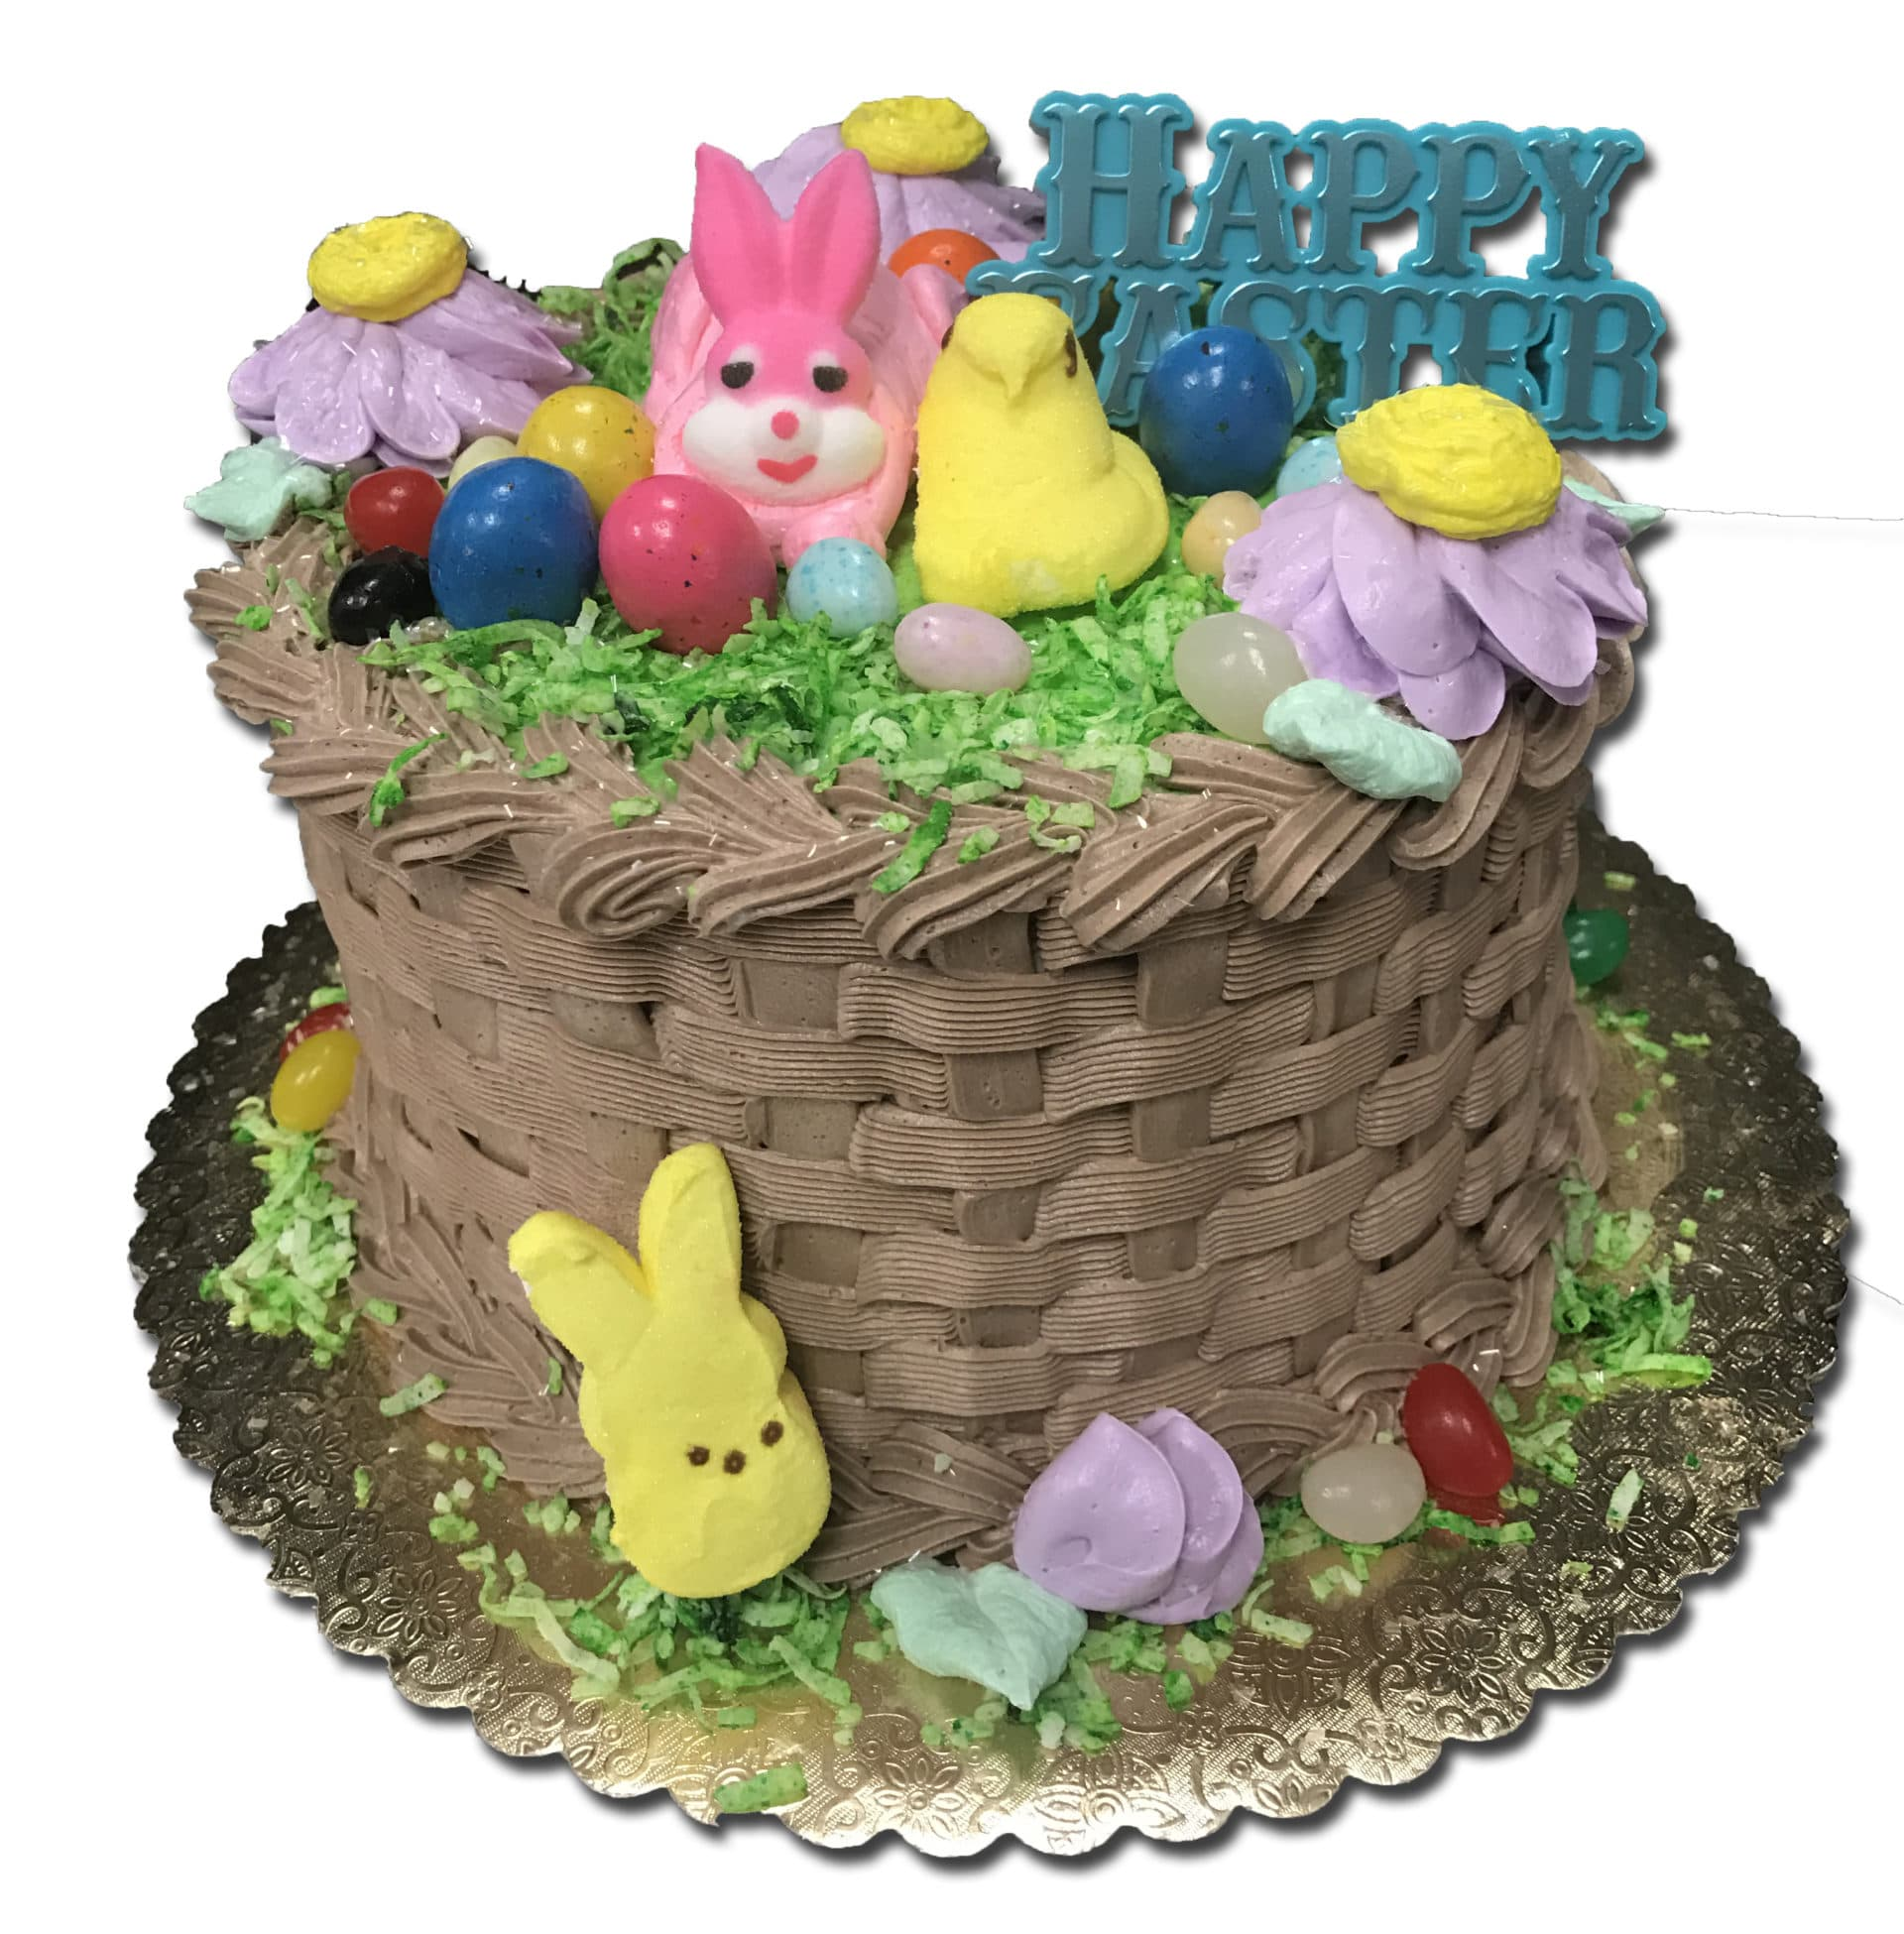 Astounding Easter Basket Cake 2 Aggies Bakery Cake Shop Funny Birthday Cards Online Fluifree Goldxyz